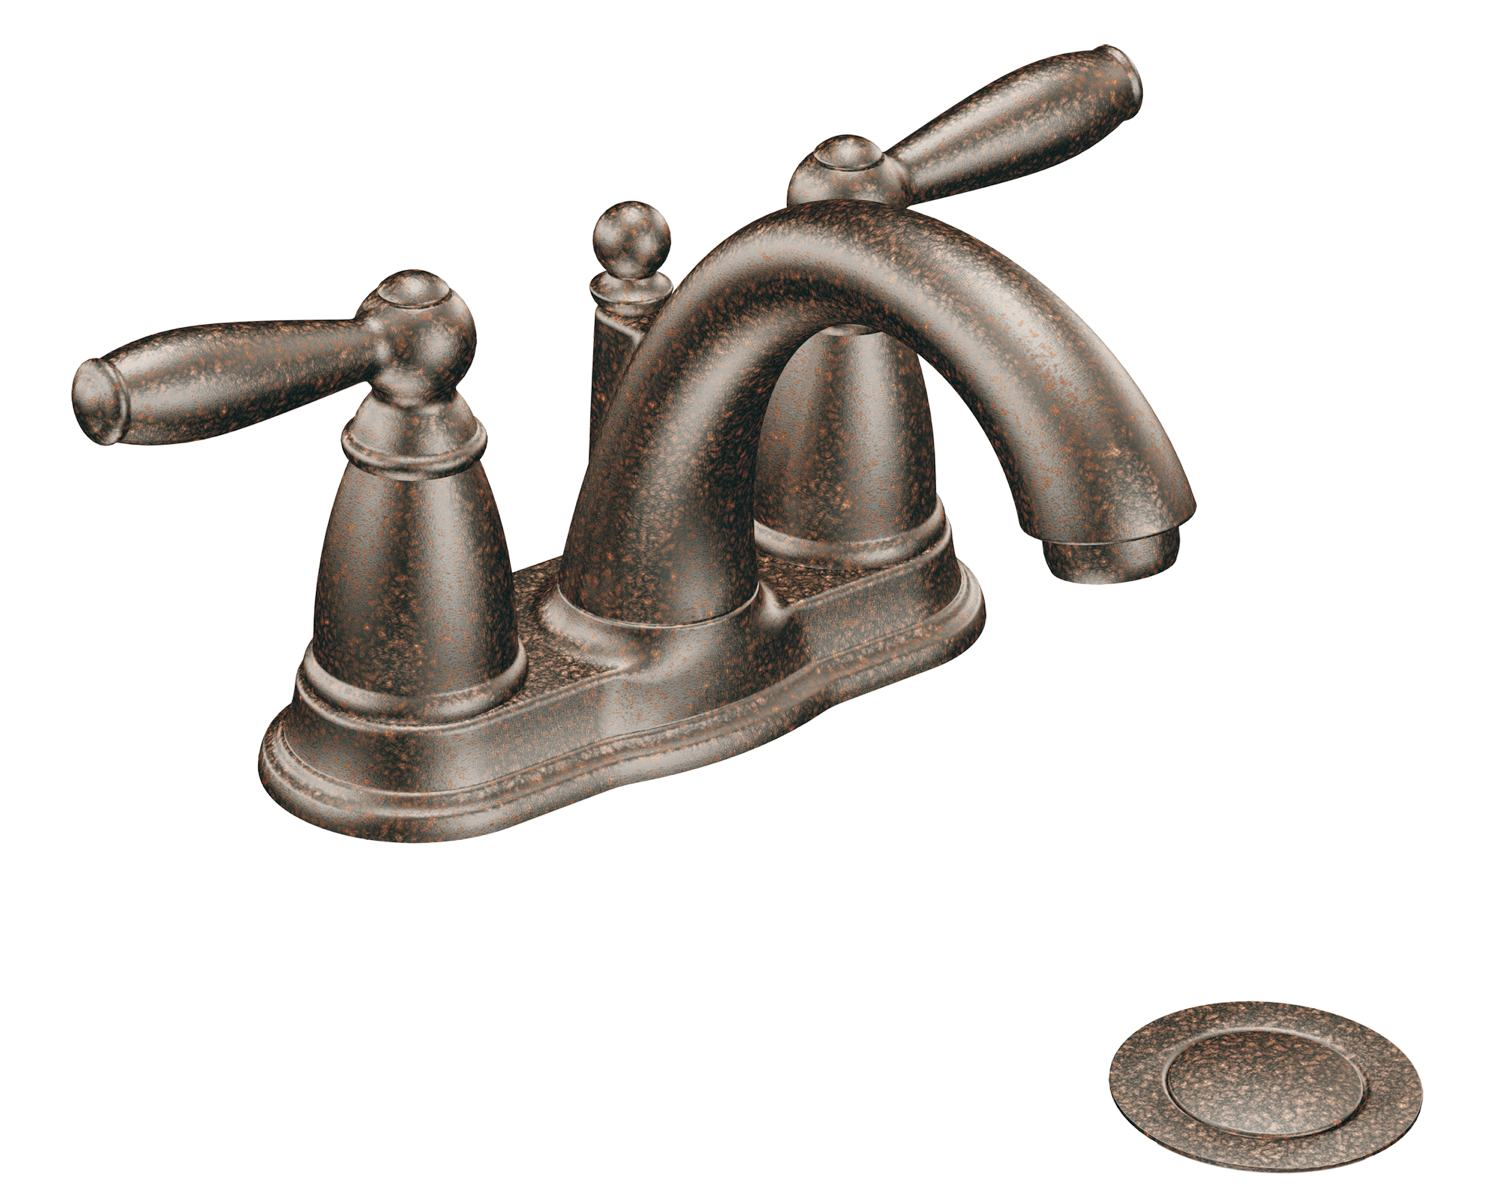 Moen 6610ORB Brantford 2-Handle Lavatory Faucet With Drain